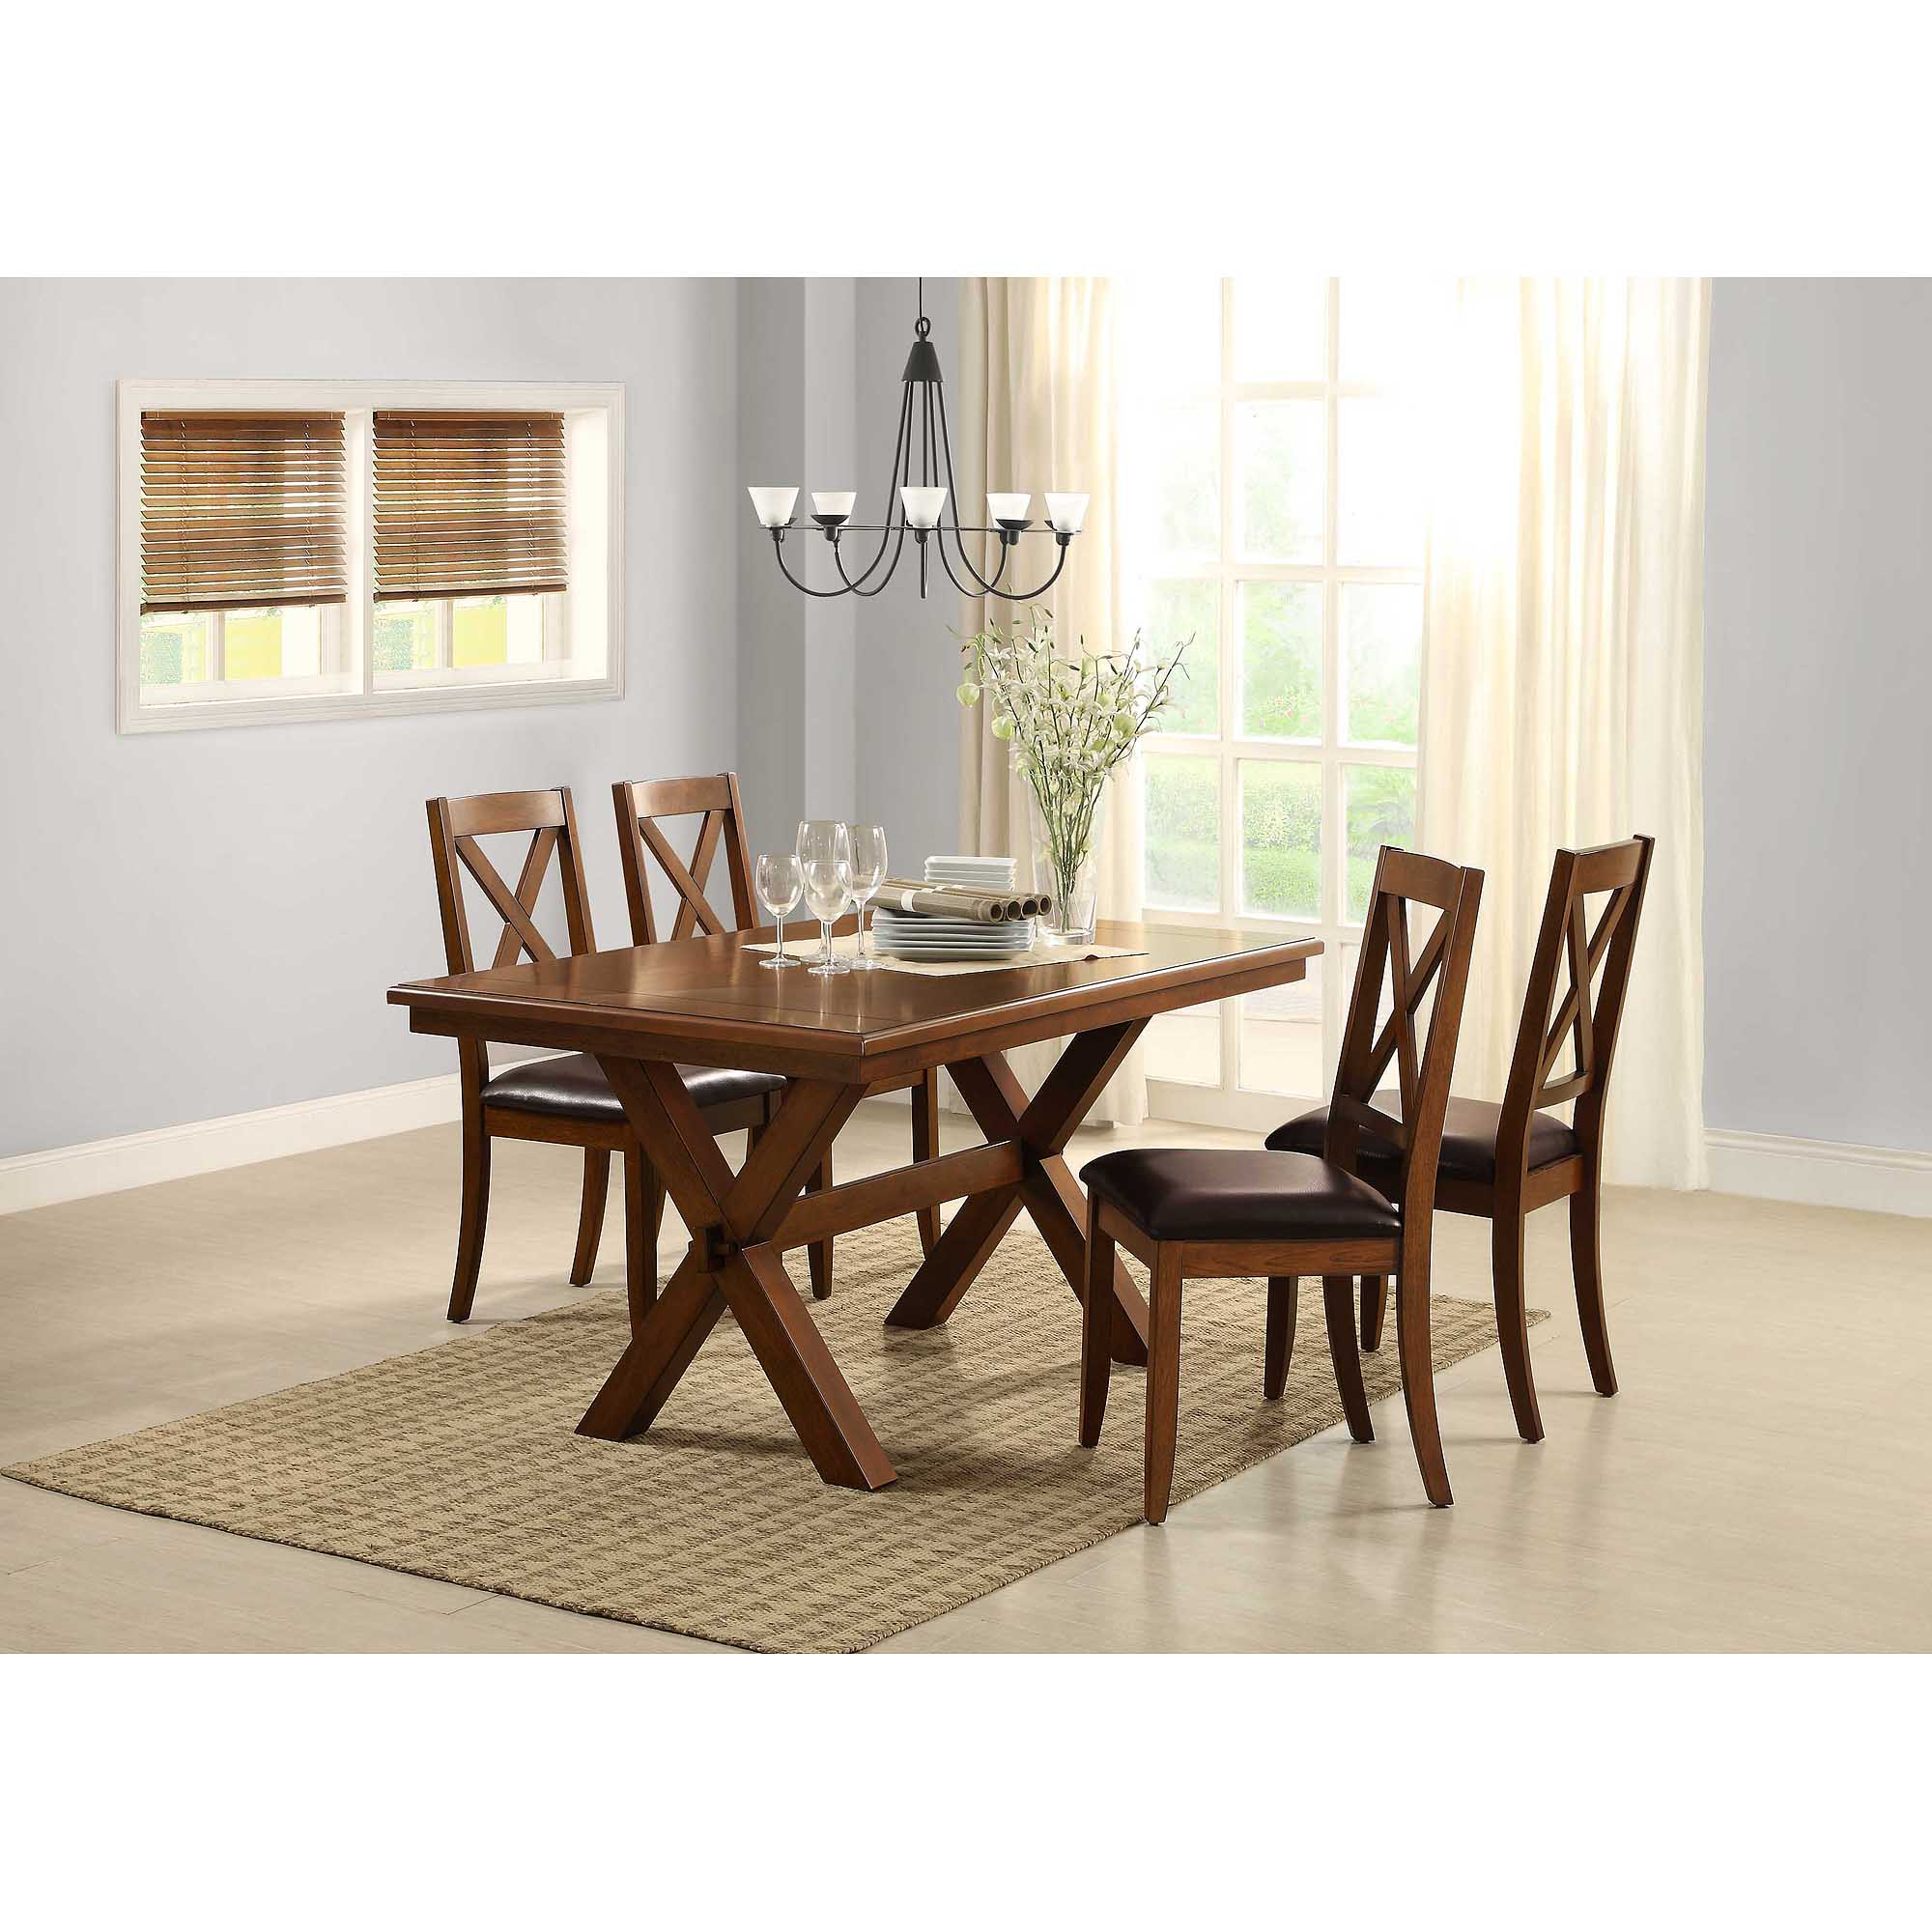 Best Kitchen Gallery: Better Homes And Gardens Maddox Crossing Dining Table Brown of Dining Chairs Walmart  on rachelxblog.com